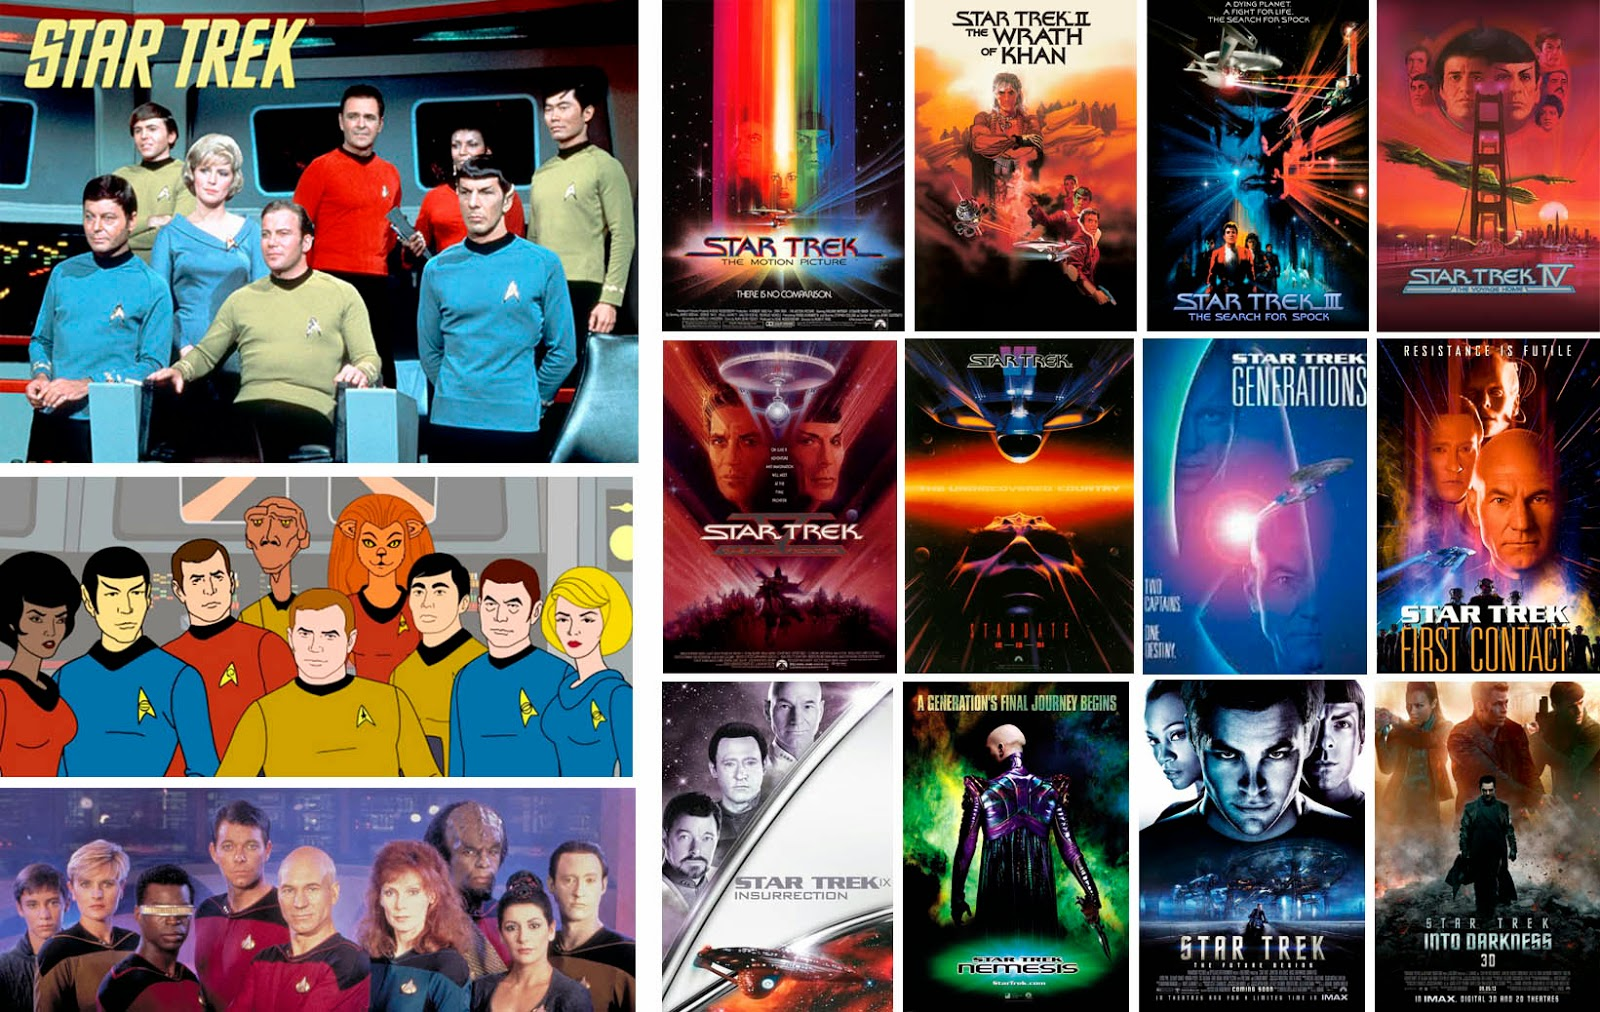 'Star Trek', proyectos cinematográficos